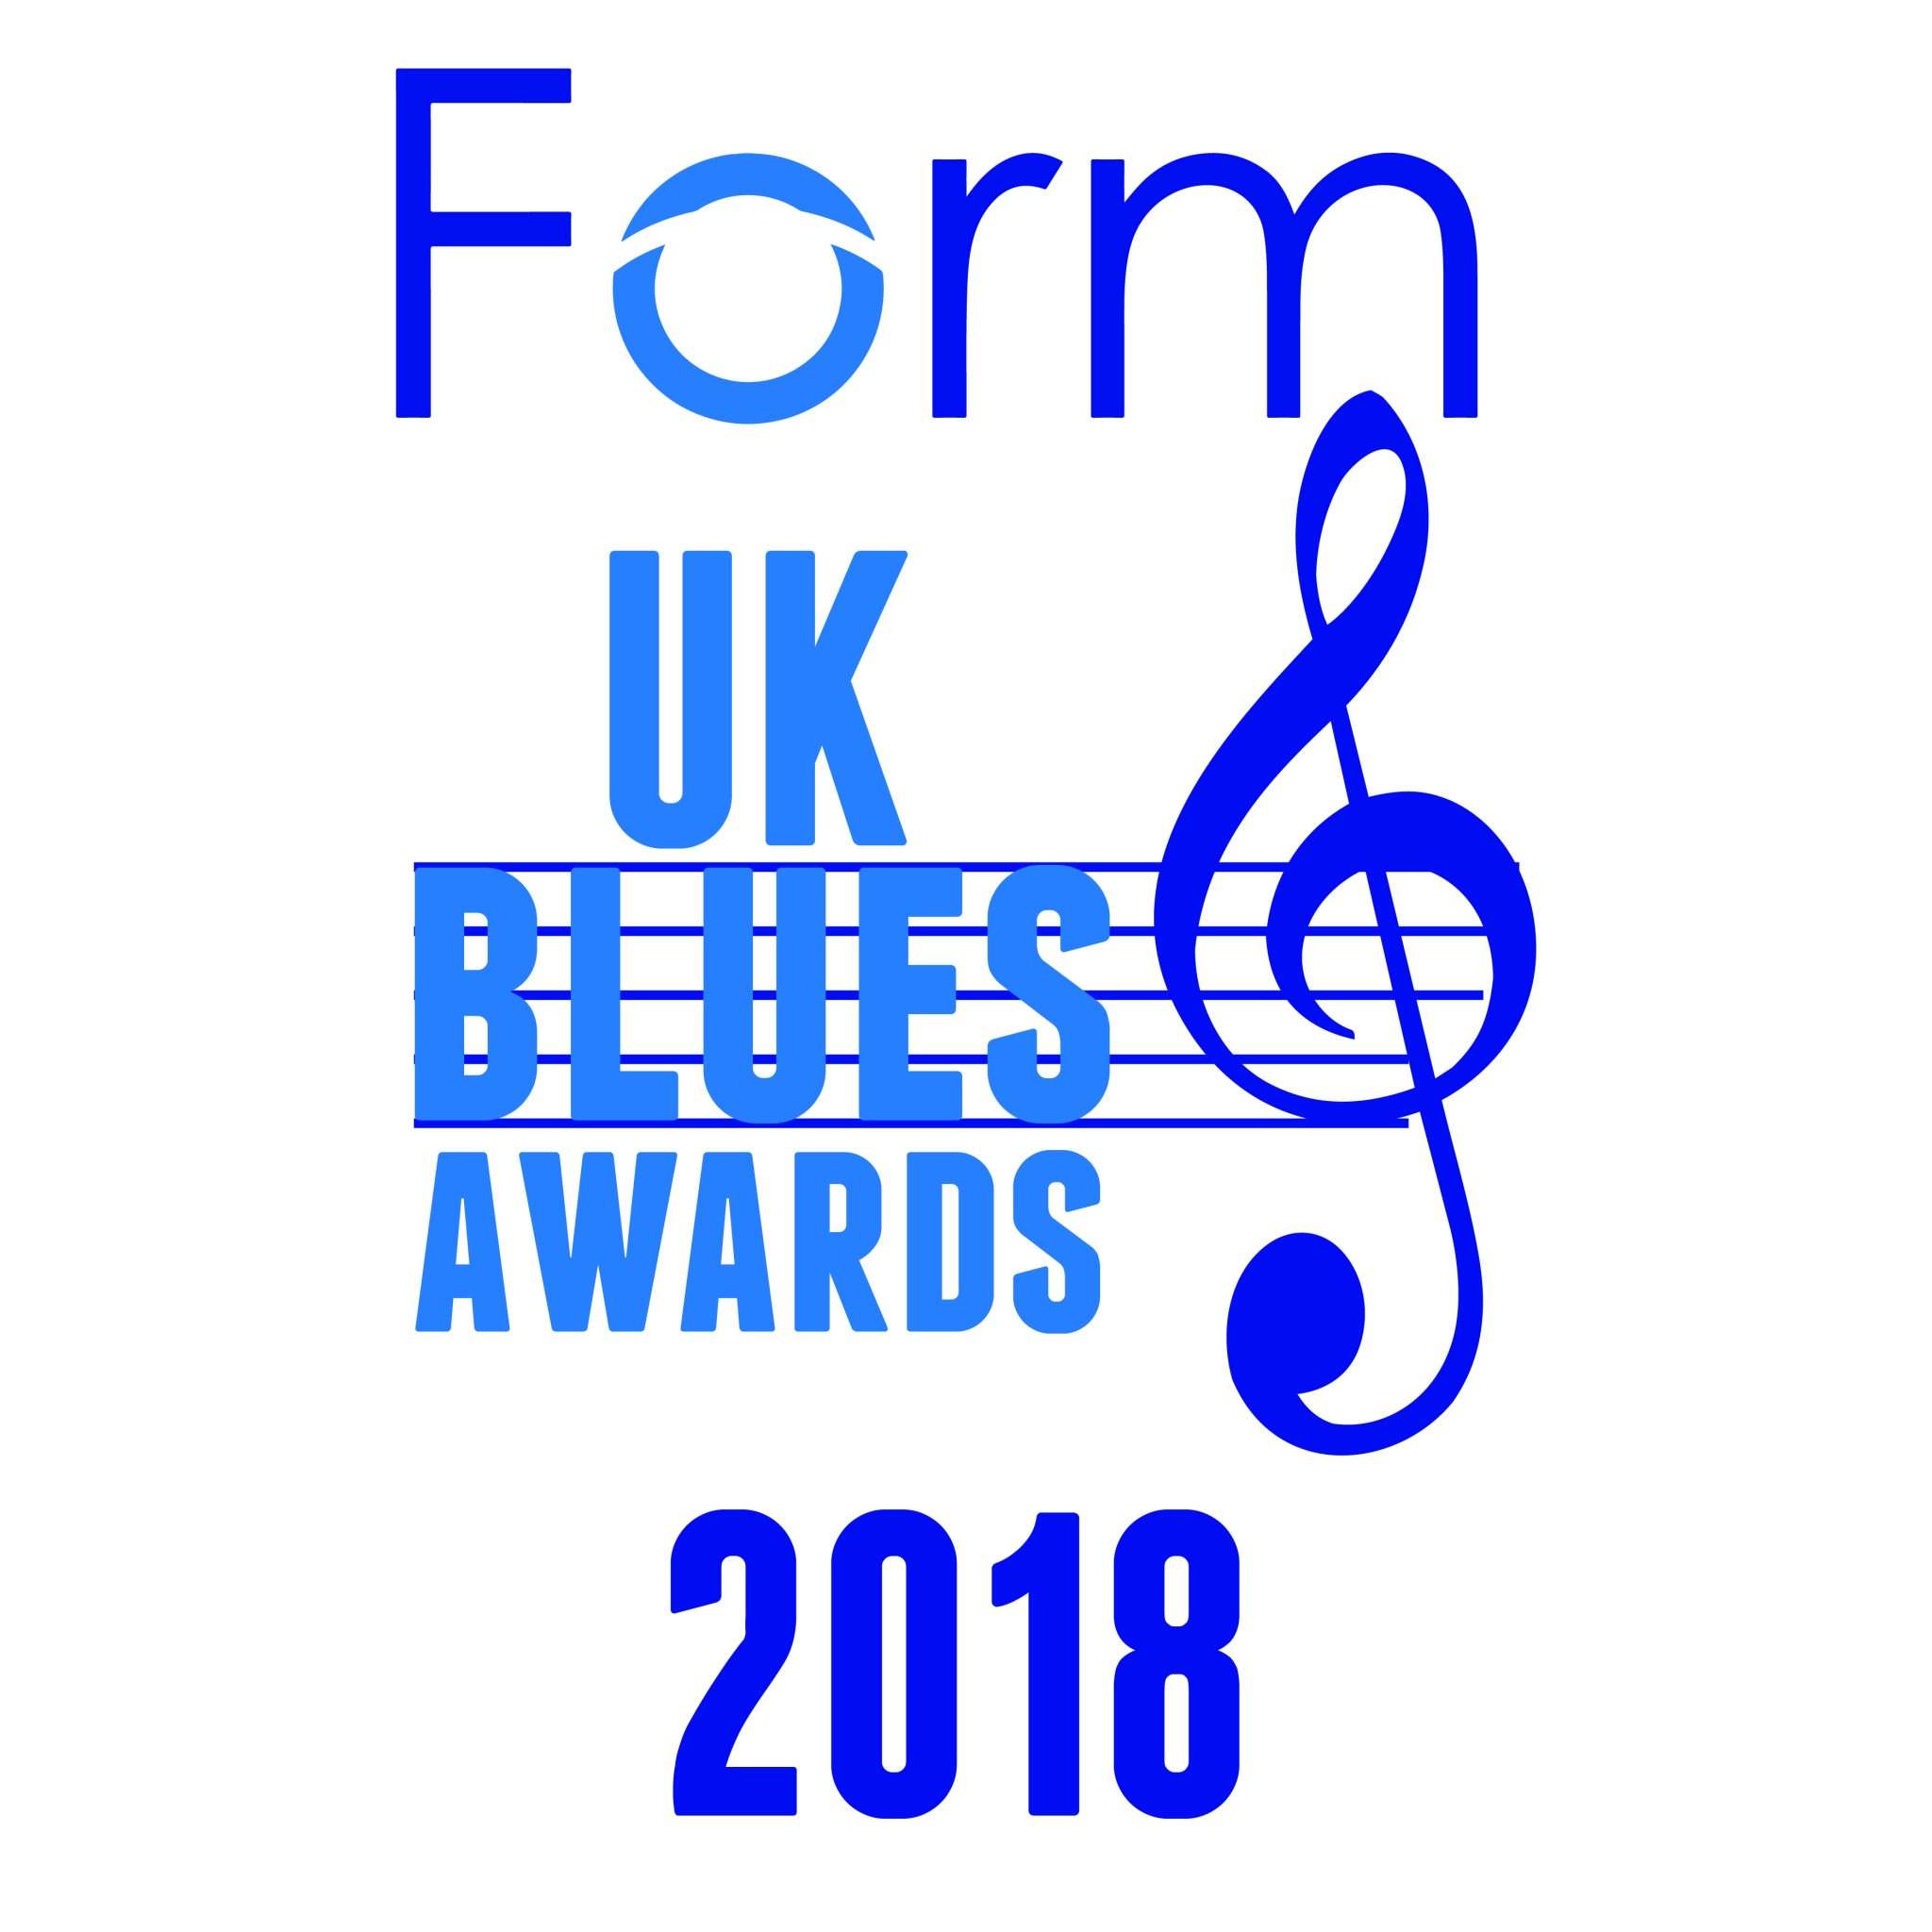 Still Time VOTE NOW FORM UKBLUES AWARDS 2018